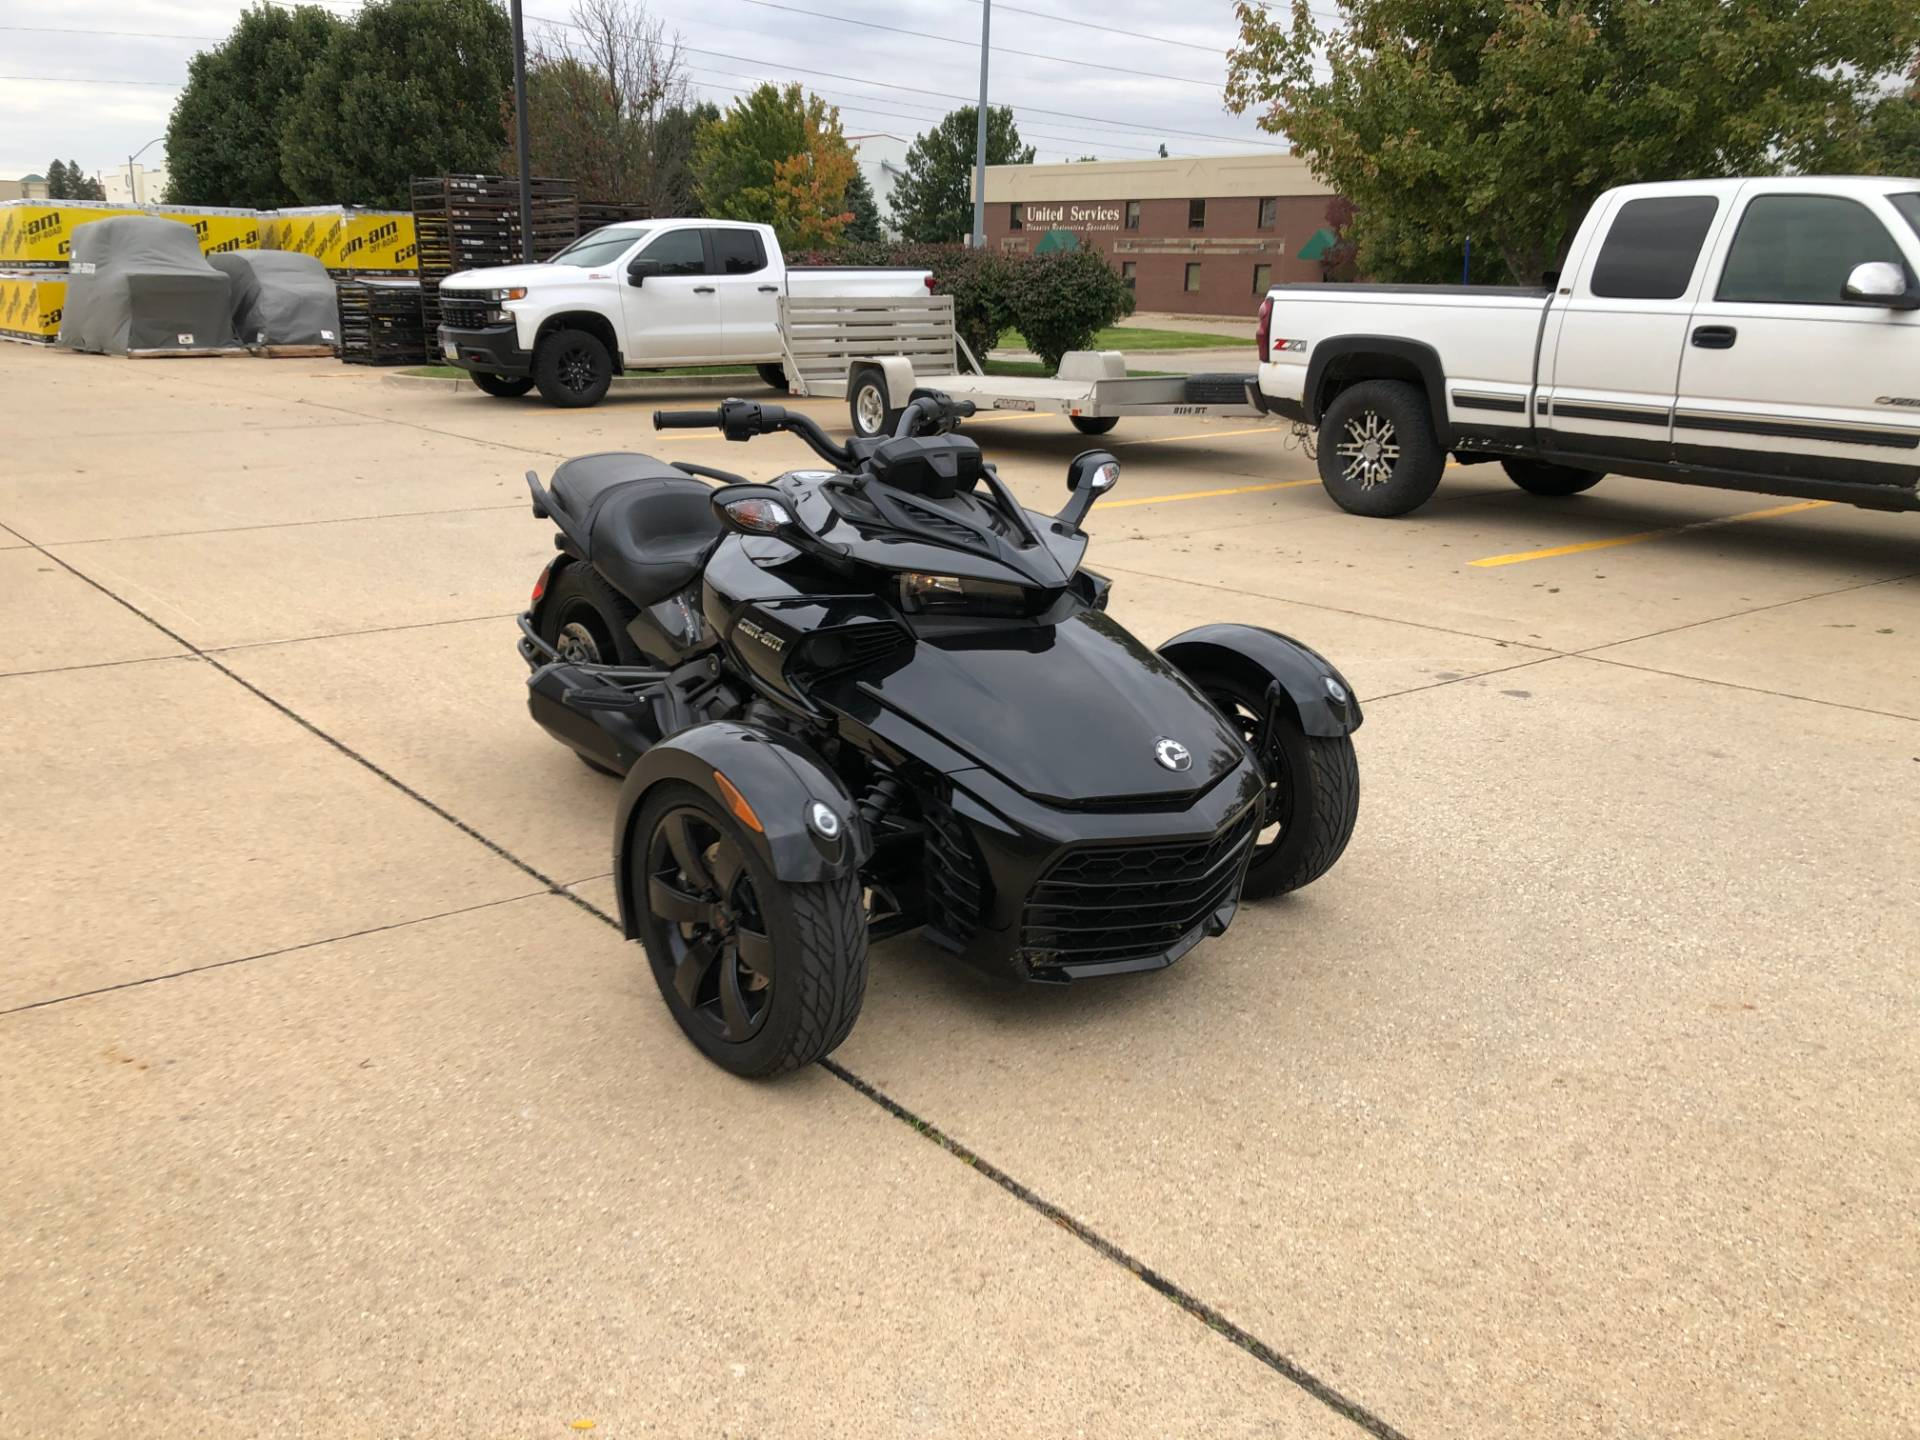 2018 Can-Am Spyder F3 in Grimes, Iowa - Photo 2